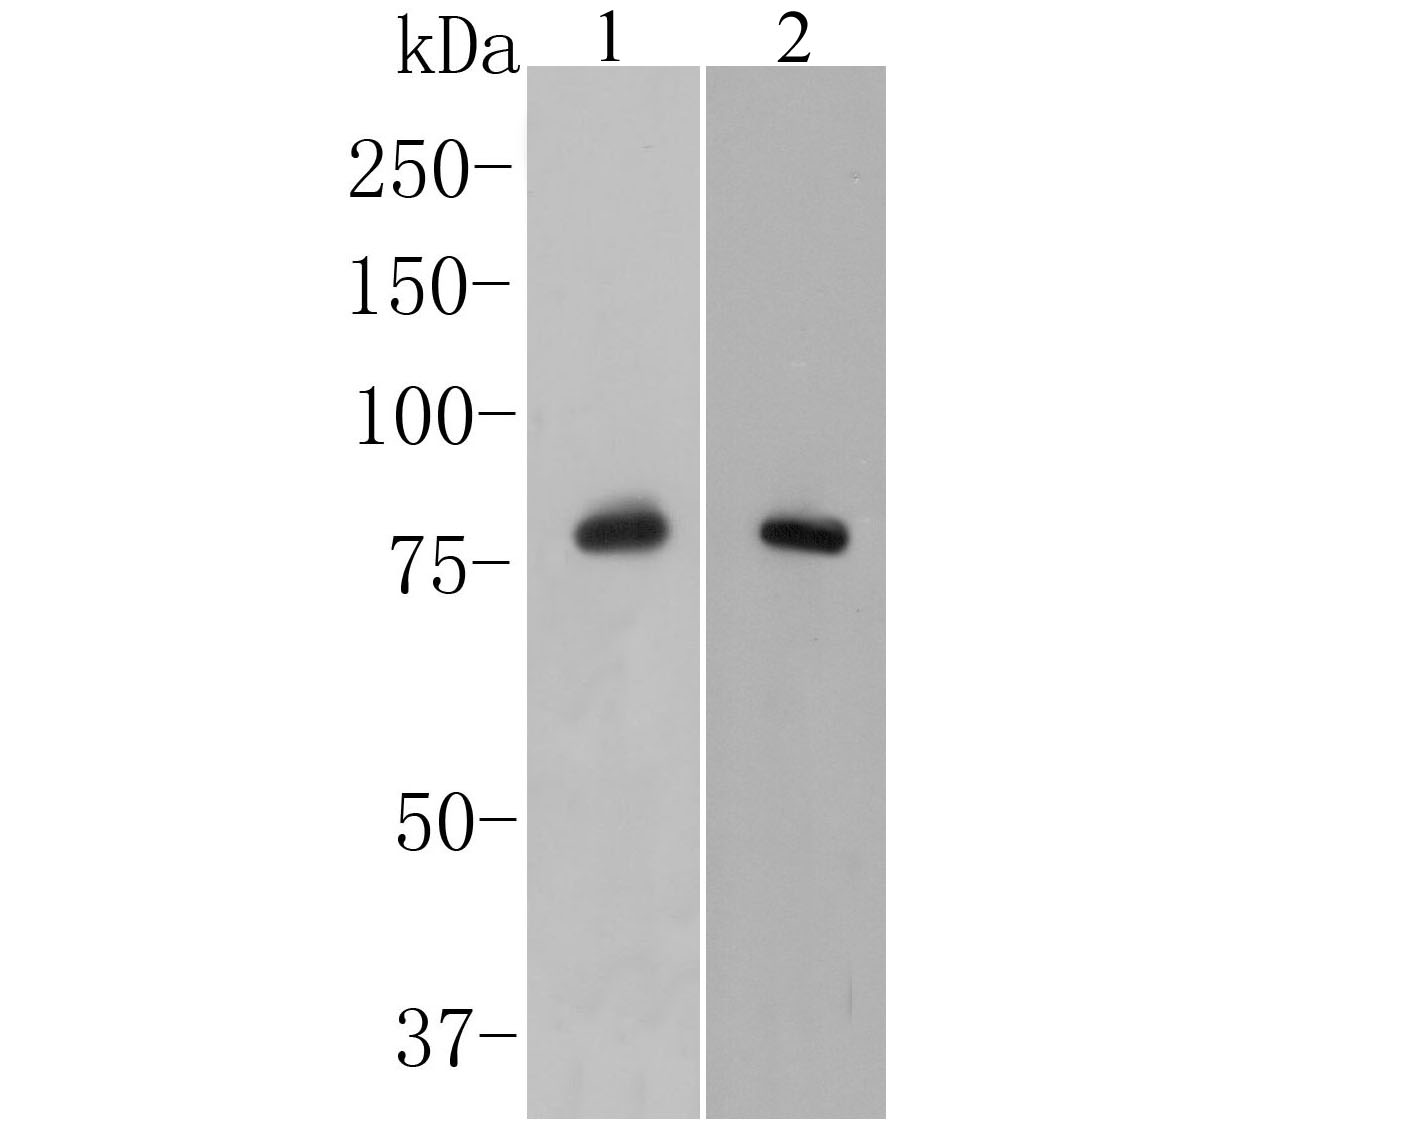 Western blot analysis of delta 1 Catenin/CAS on mouse stomach tissue lysate. Proteins were transferred to a PVDF membrane and blocked with 5% BSA in PBS for 1 hour at room temperature. The primary antibody (ER1901-92, 1/500) was used in 5% BSA at room temperature for 2 hours. Goat Anti-Rabbit IgG - HRP Secondary Antibody (HA1001) at 1:5,000 dilution was used for 1 hour at room temperature.